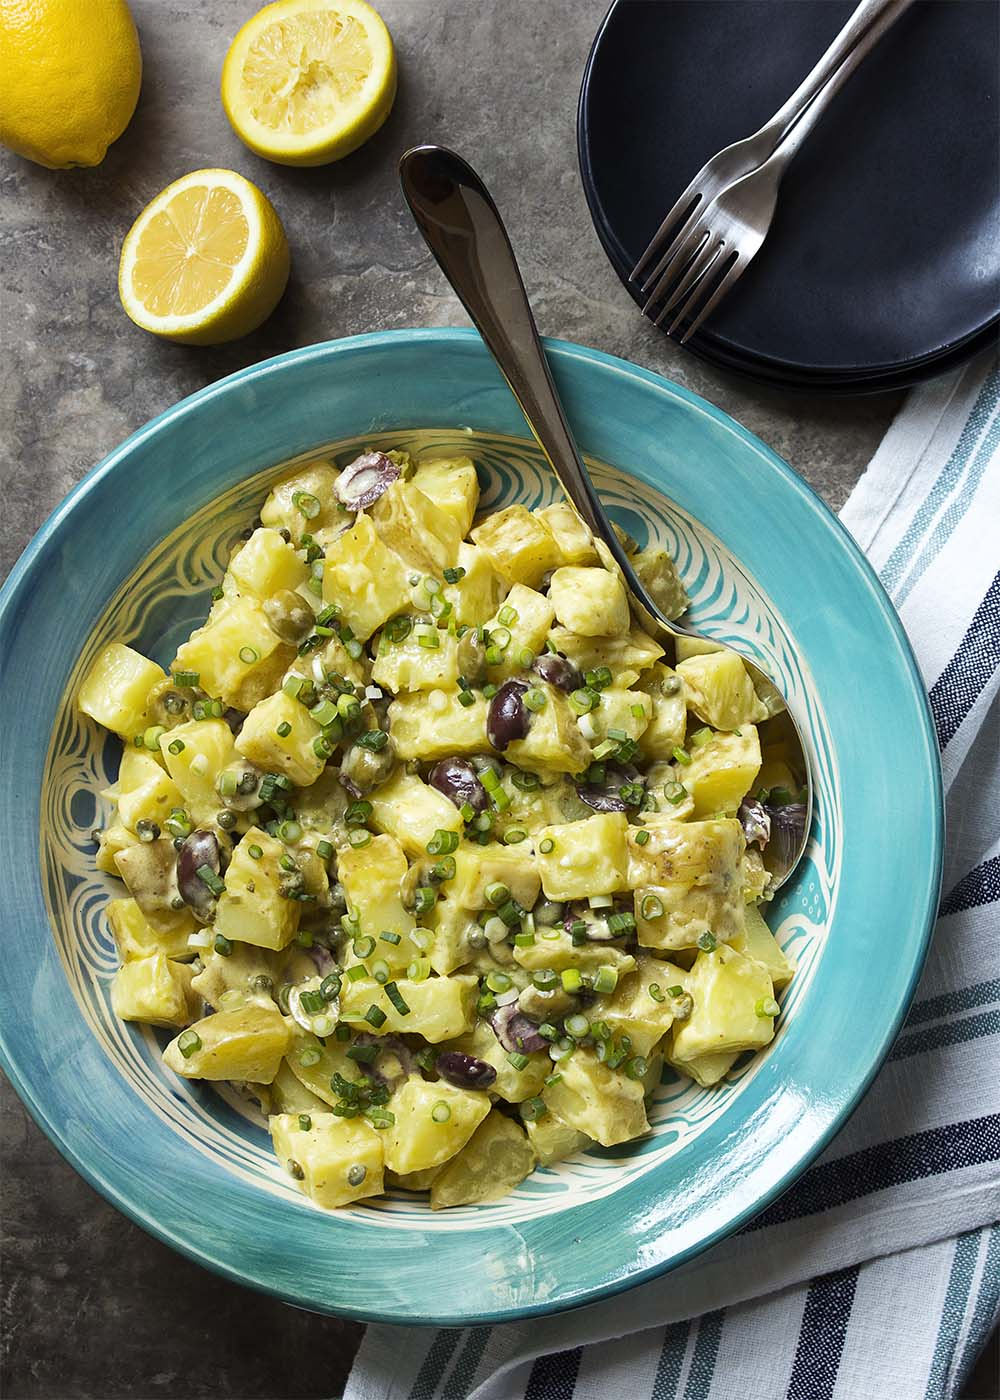 Top down view of potato salad in a blue serving bowl of diced yellow potatos, olives, and capers.